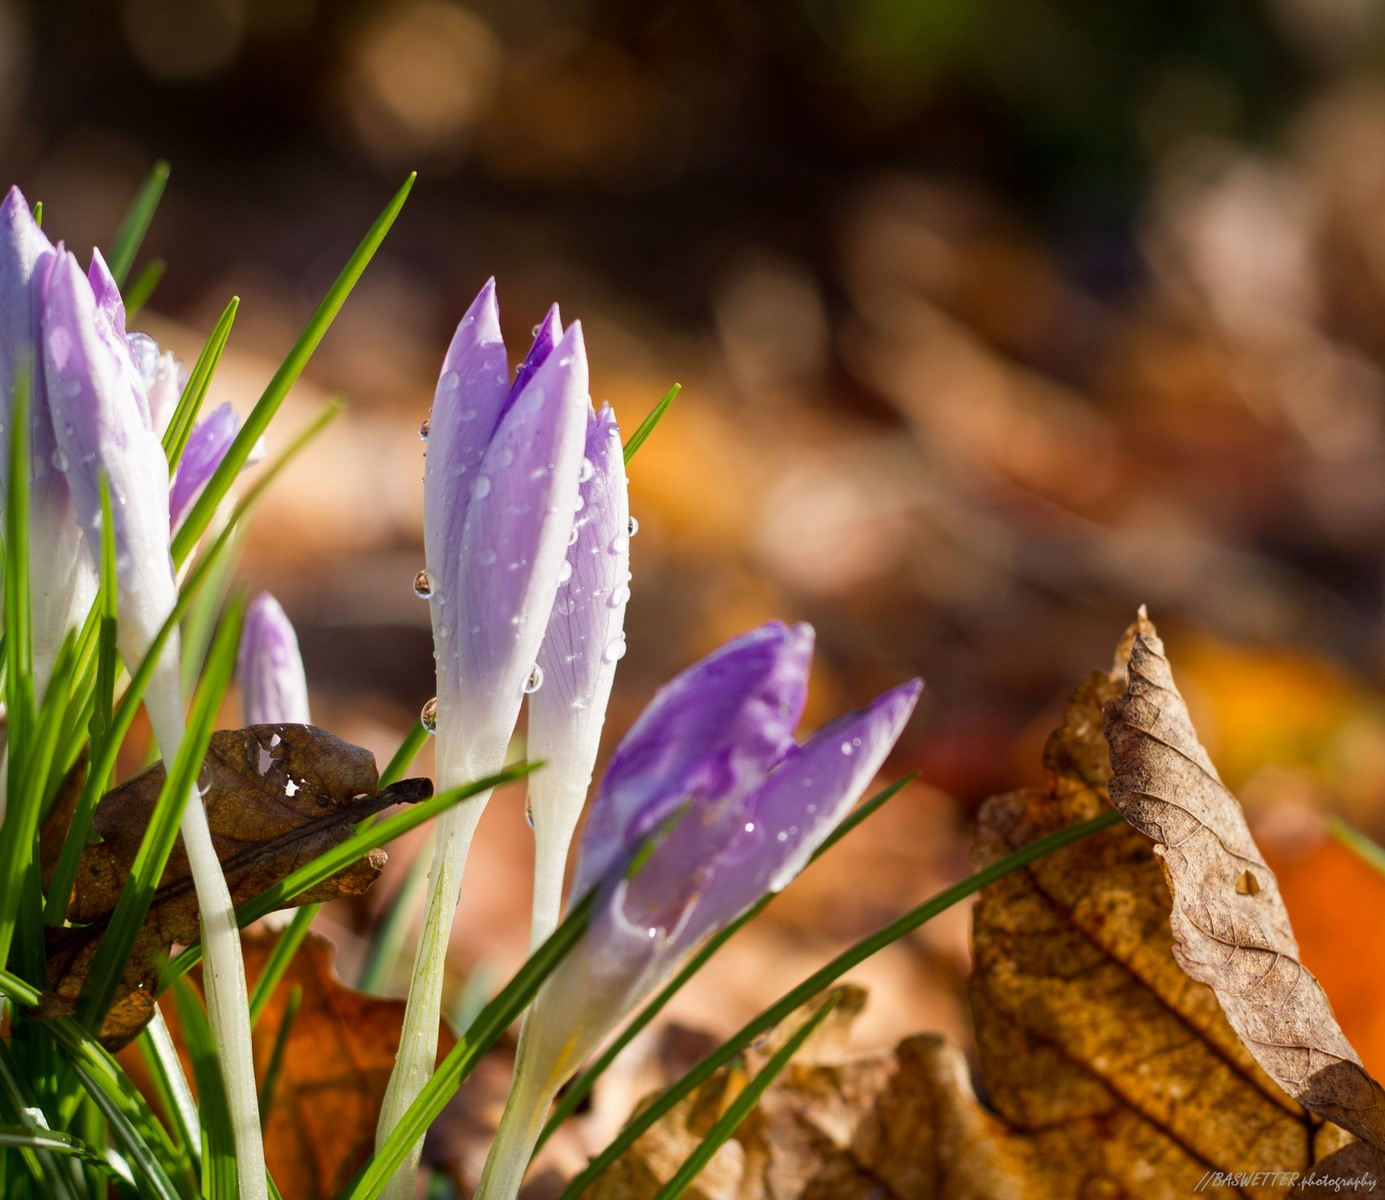 Crocussen komen uit in de lentezon